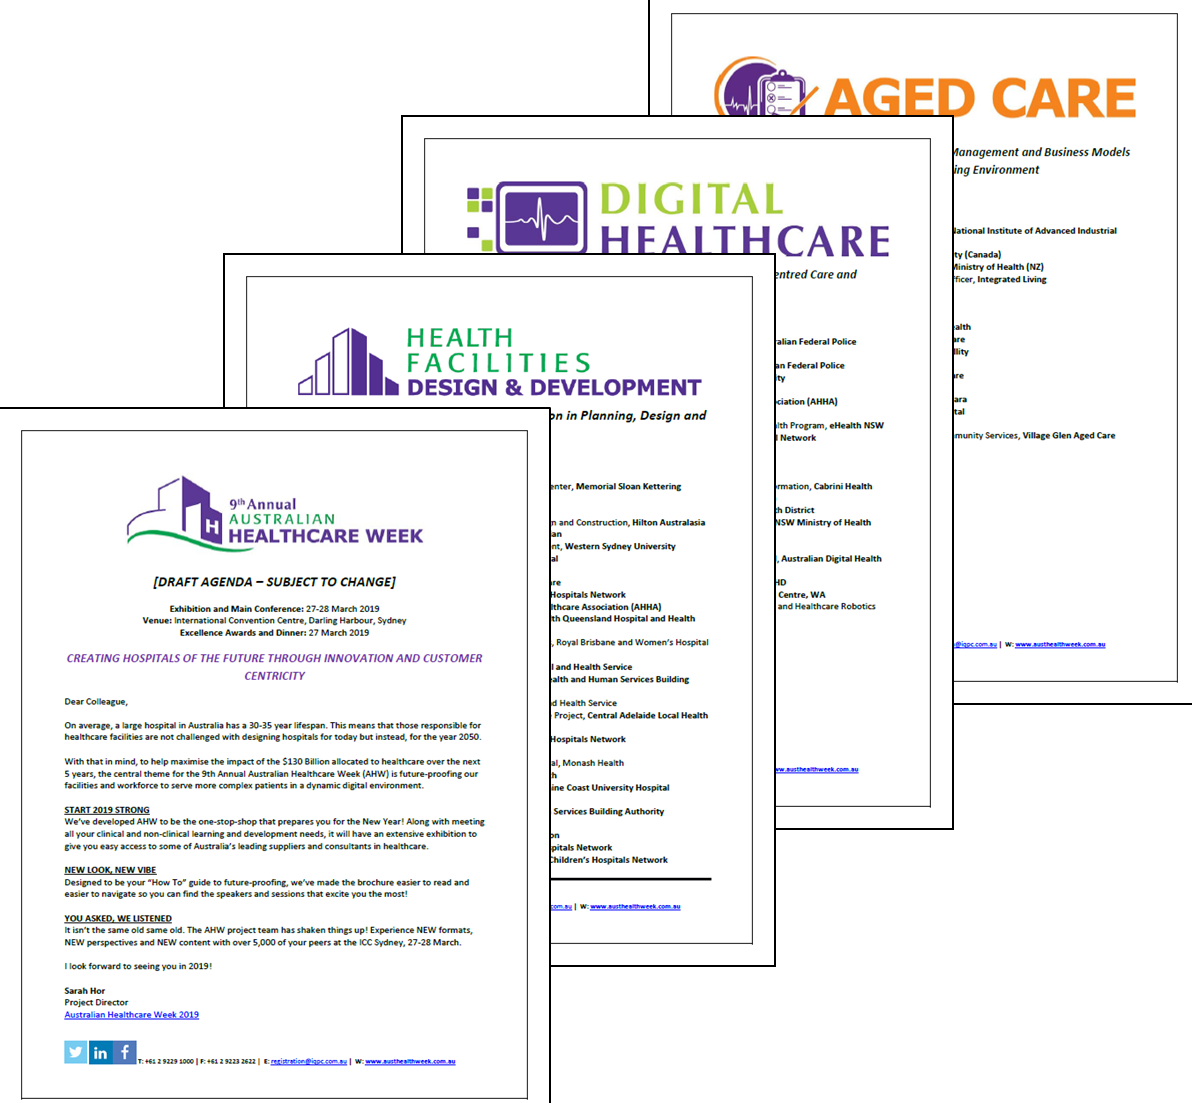 View your Conference Guide - 9th Annual Australian Healthcare Week 2019 [Sponsorship]